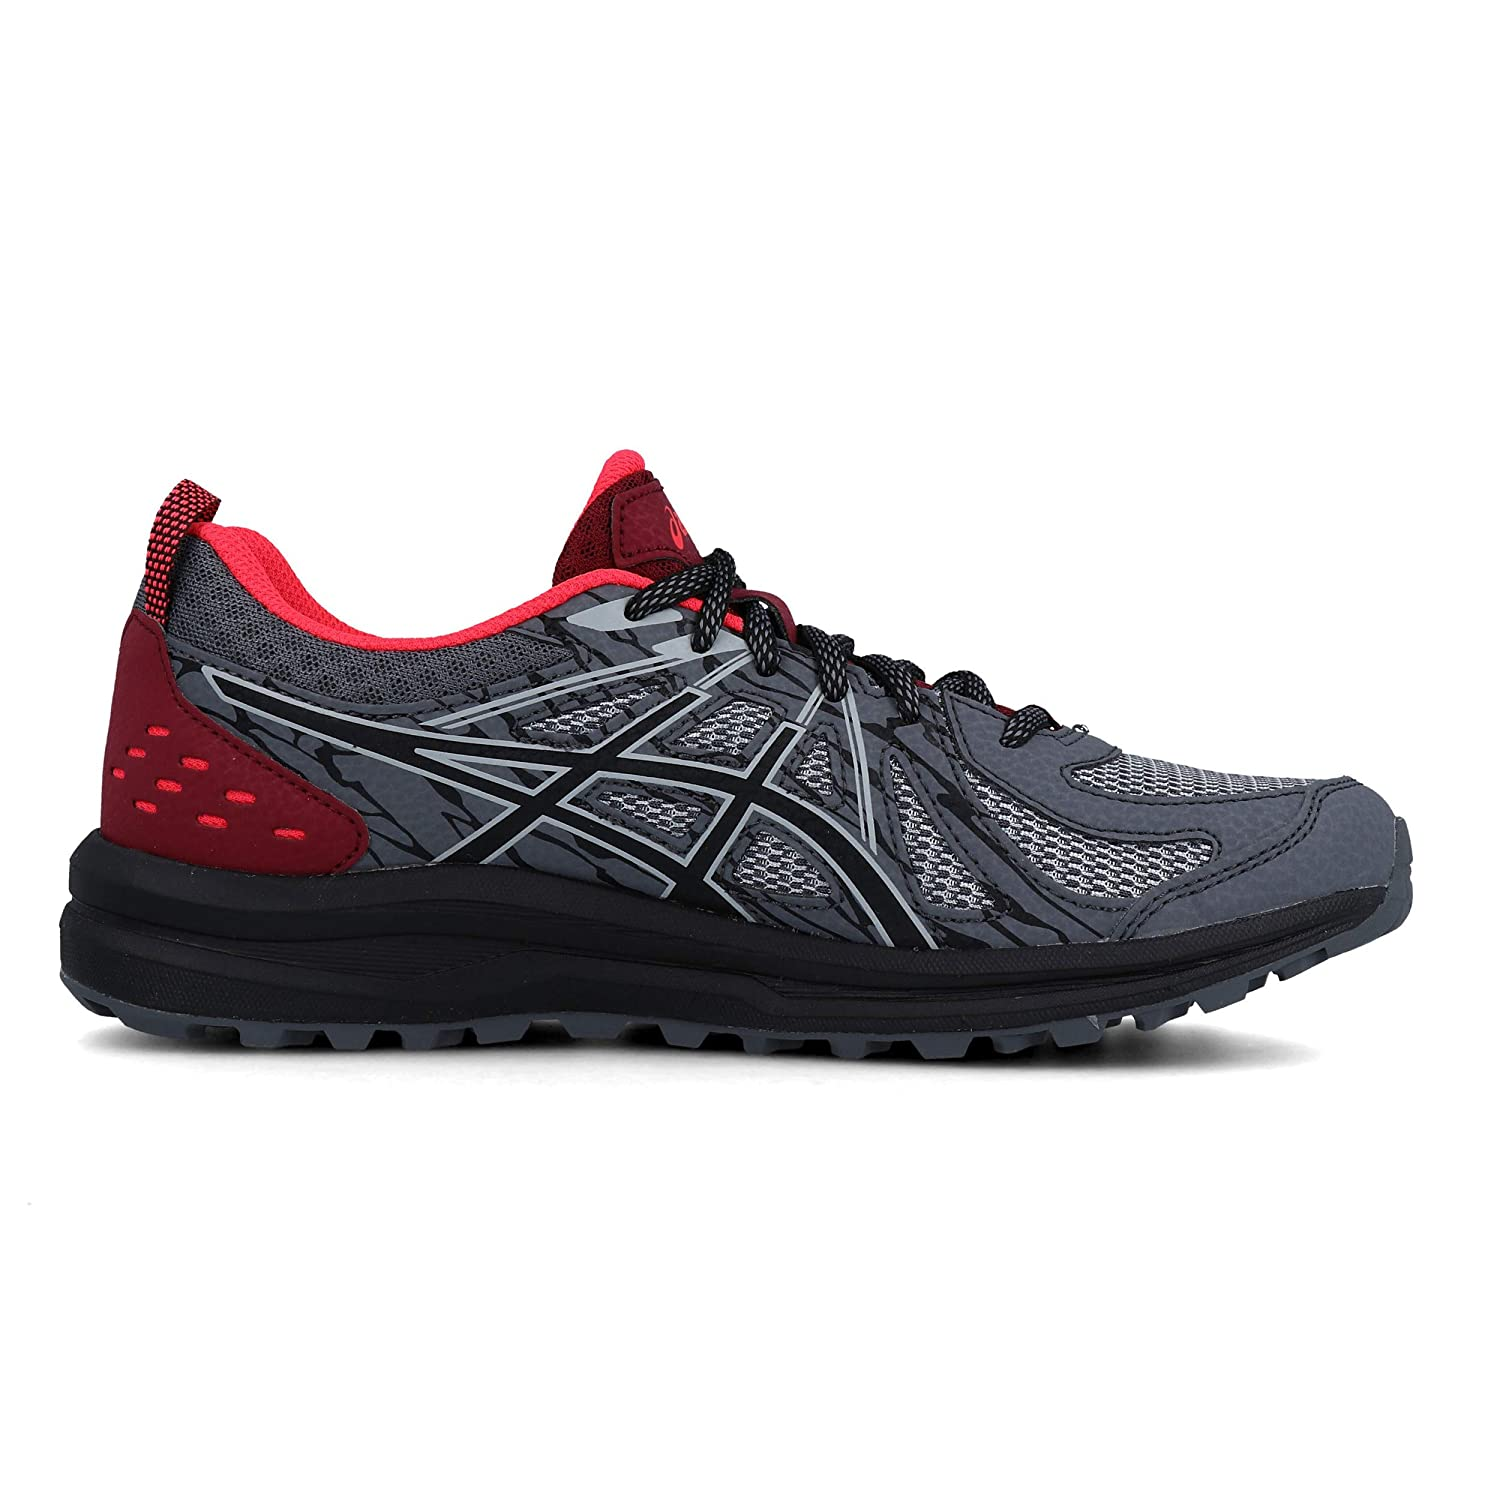 Zapatillas de Running para Mujer ASICS Frequent Trail